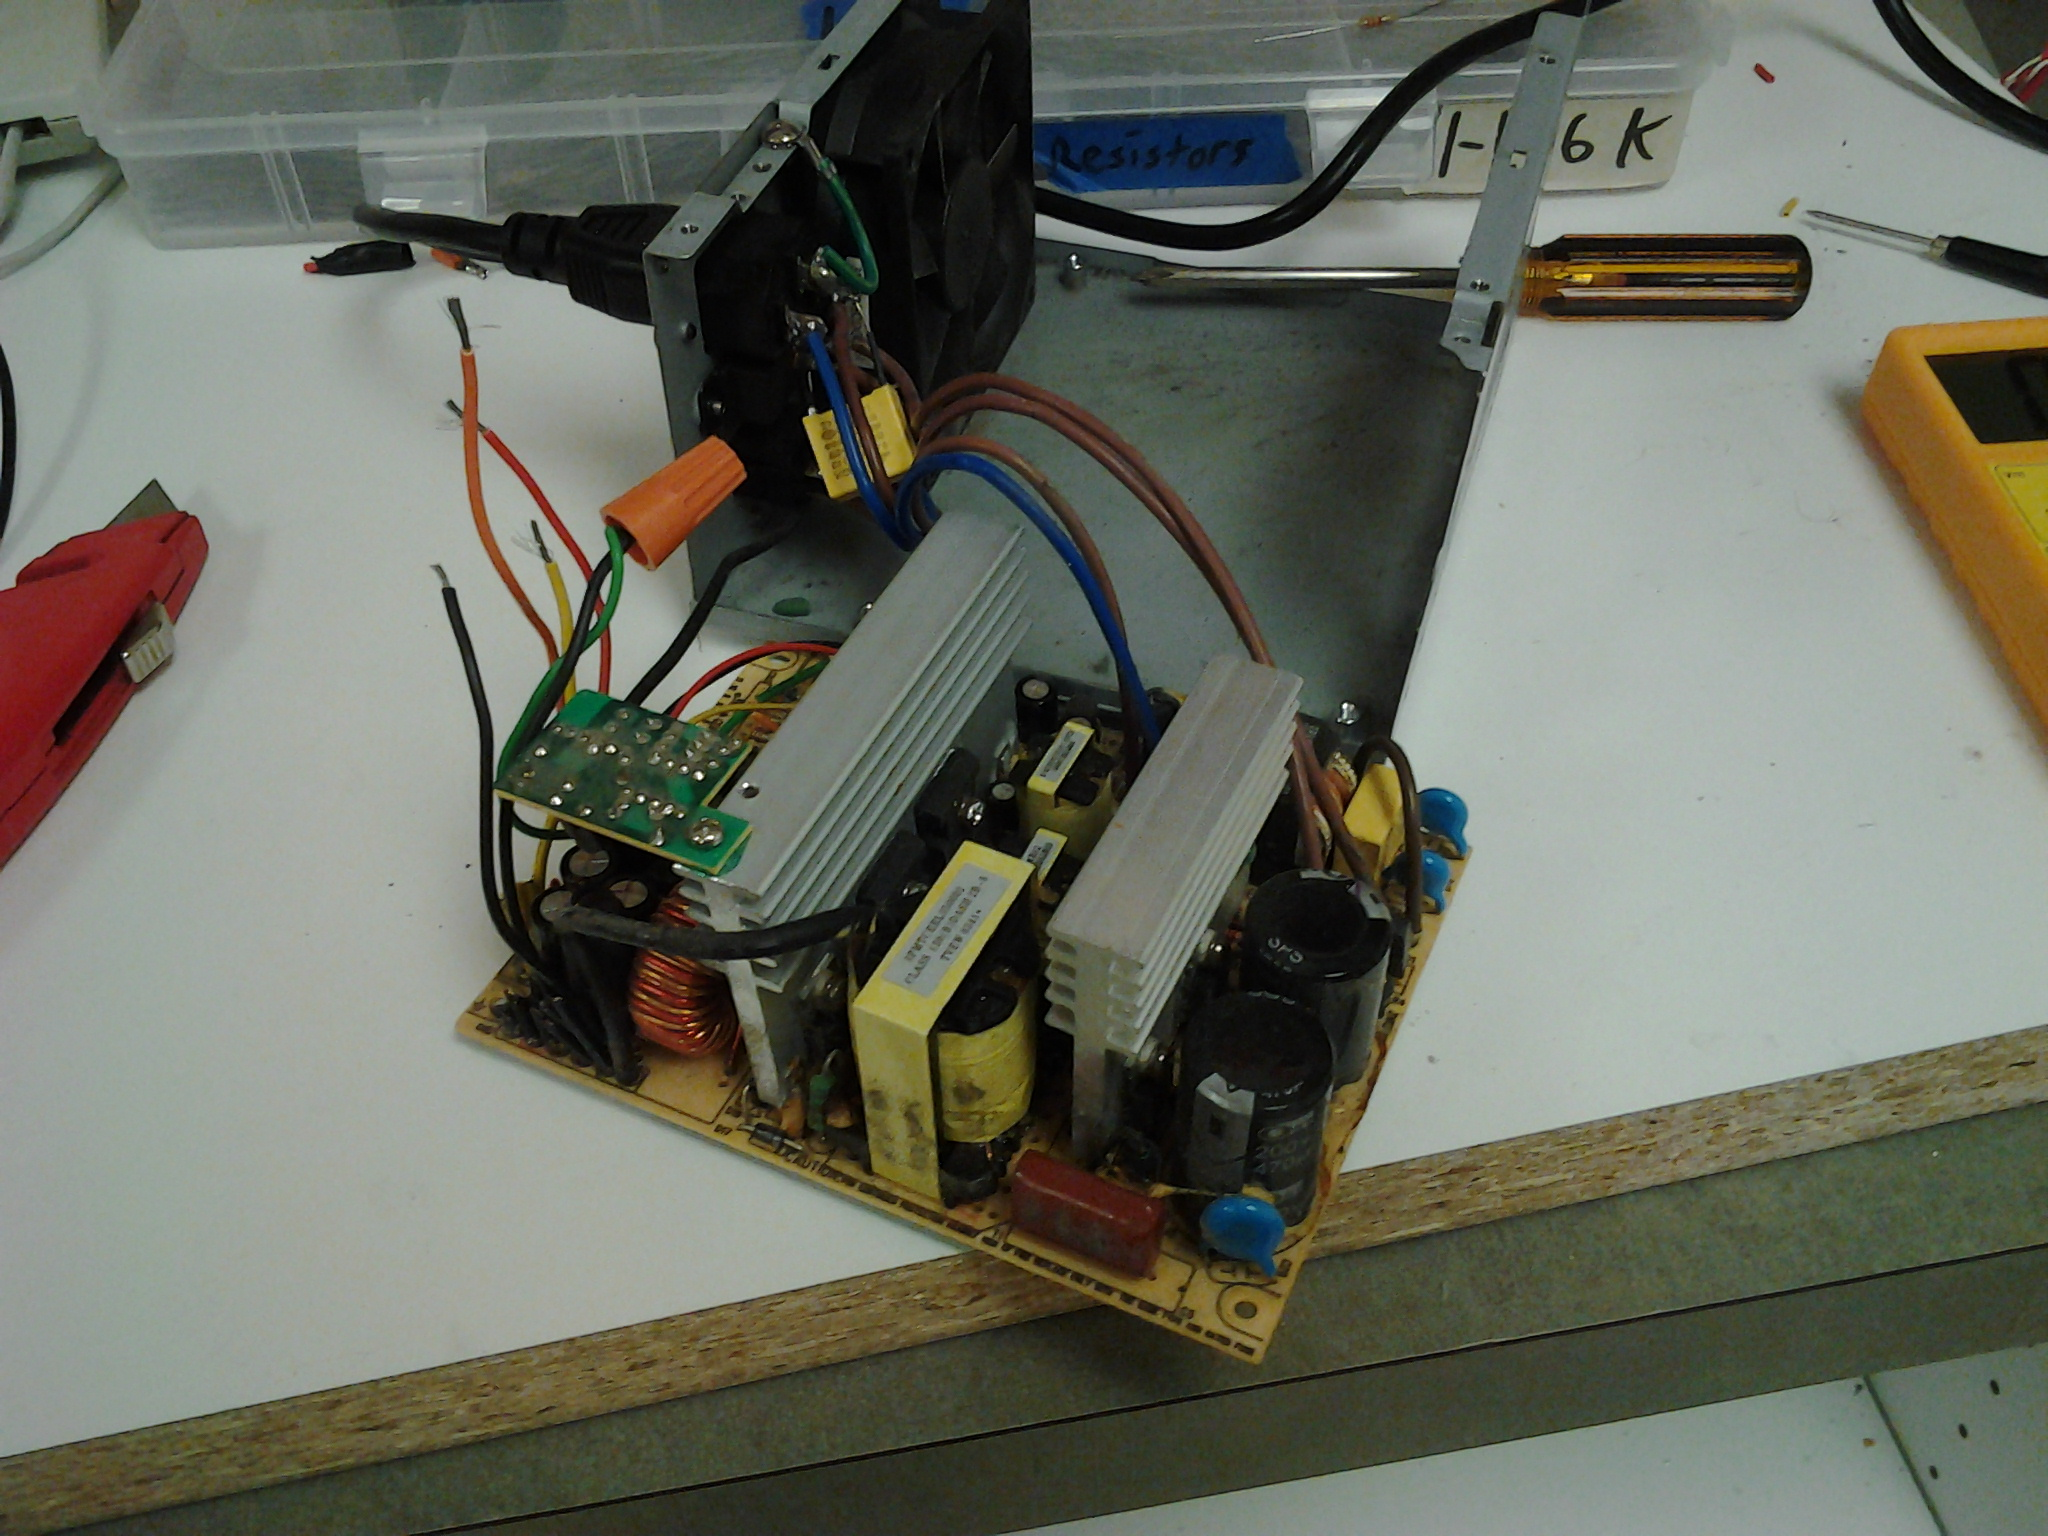 The_broken_power_supply_which_we_got_to_